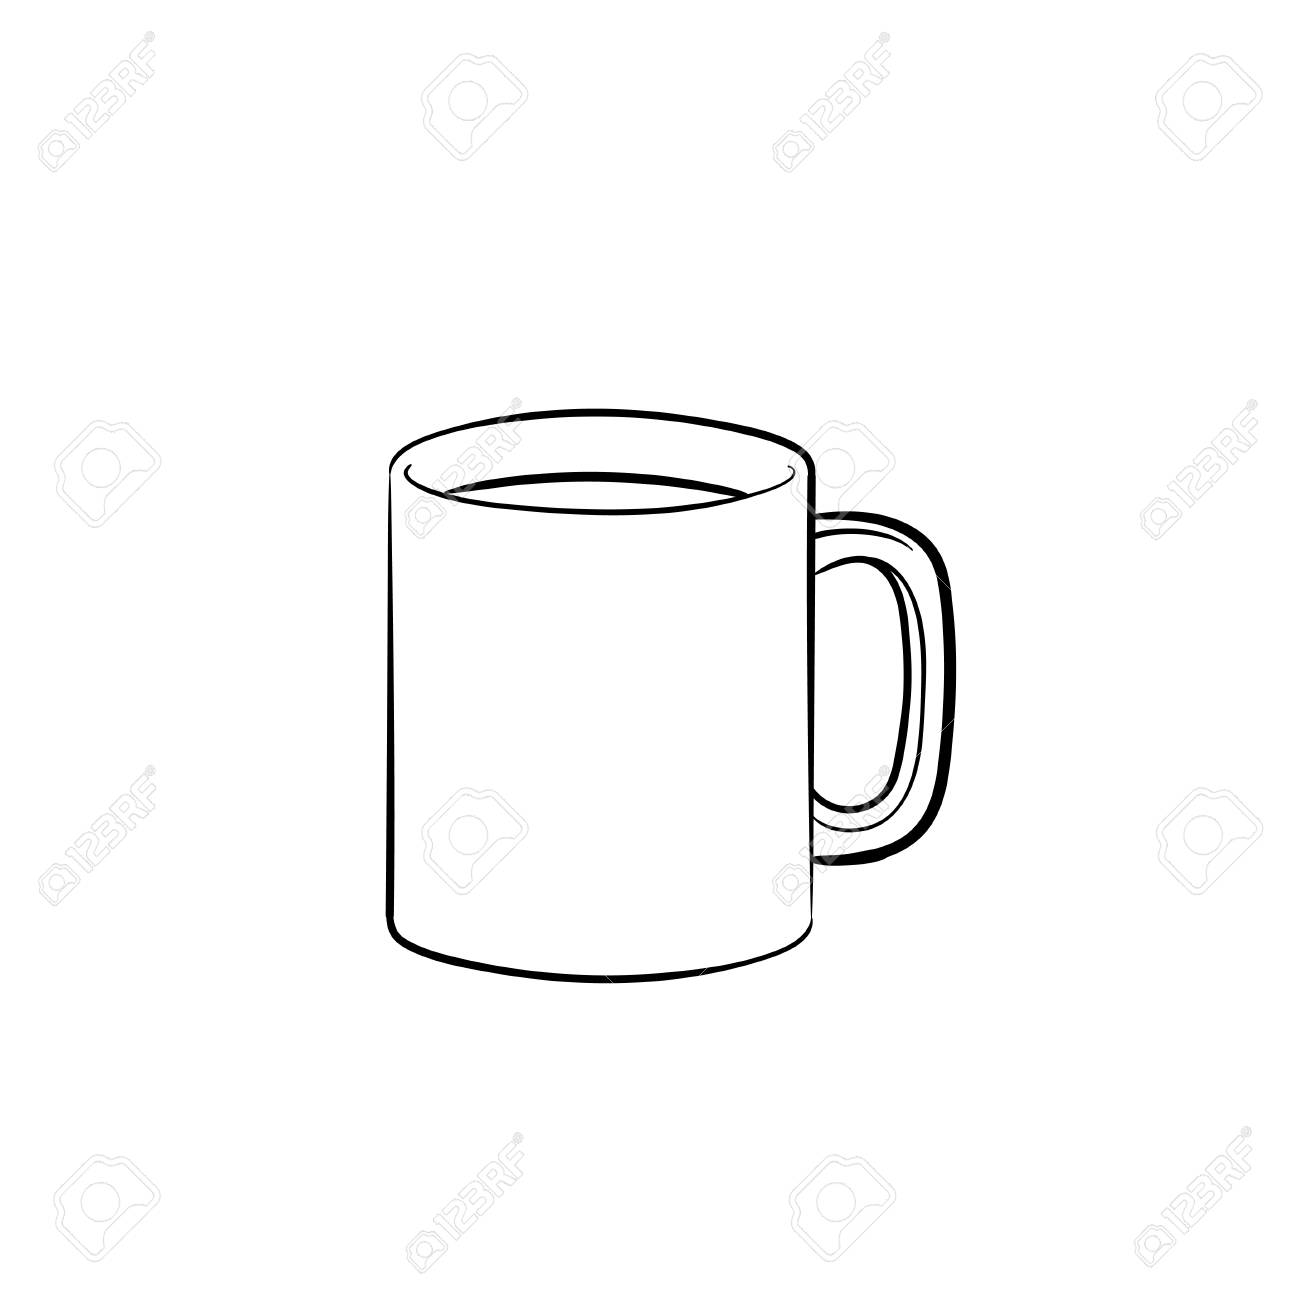 Hand With Drink Drawn Hot Outline Of IconCoffee Mug Doodle VqSUMGzp